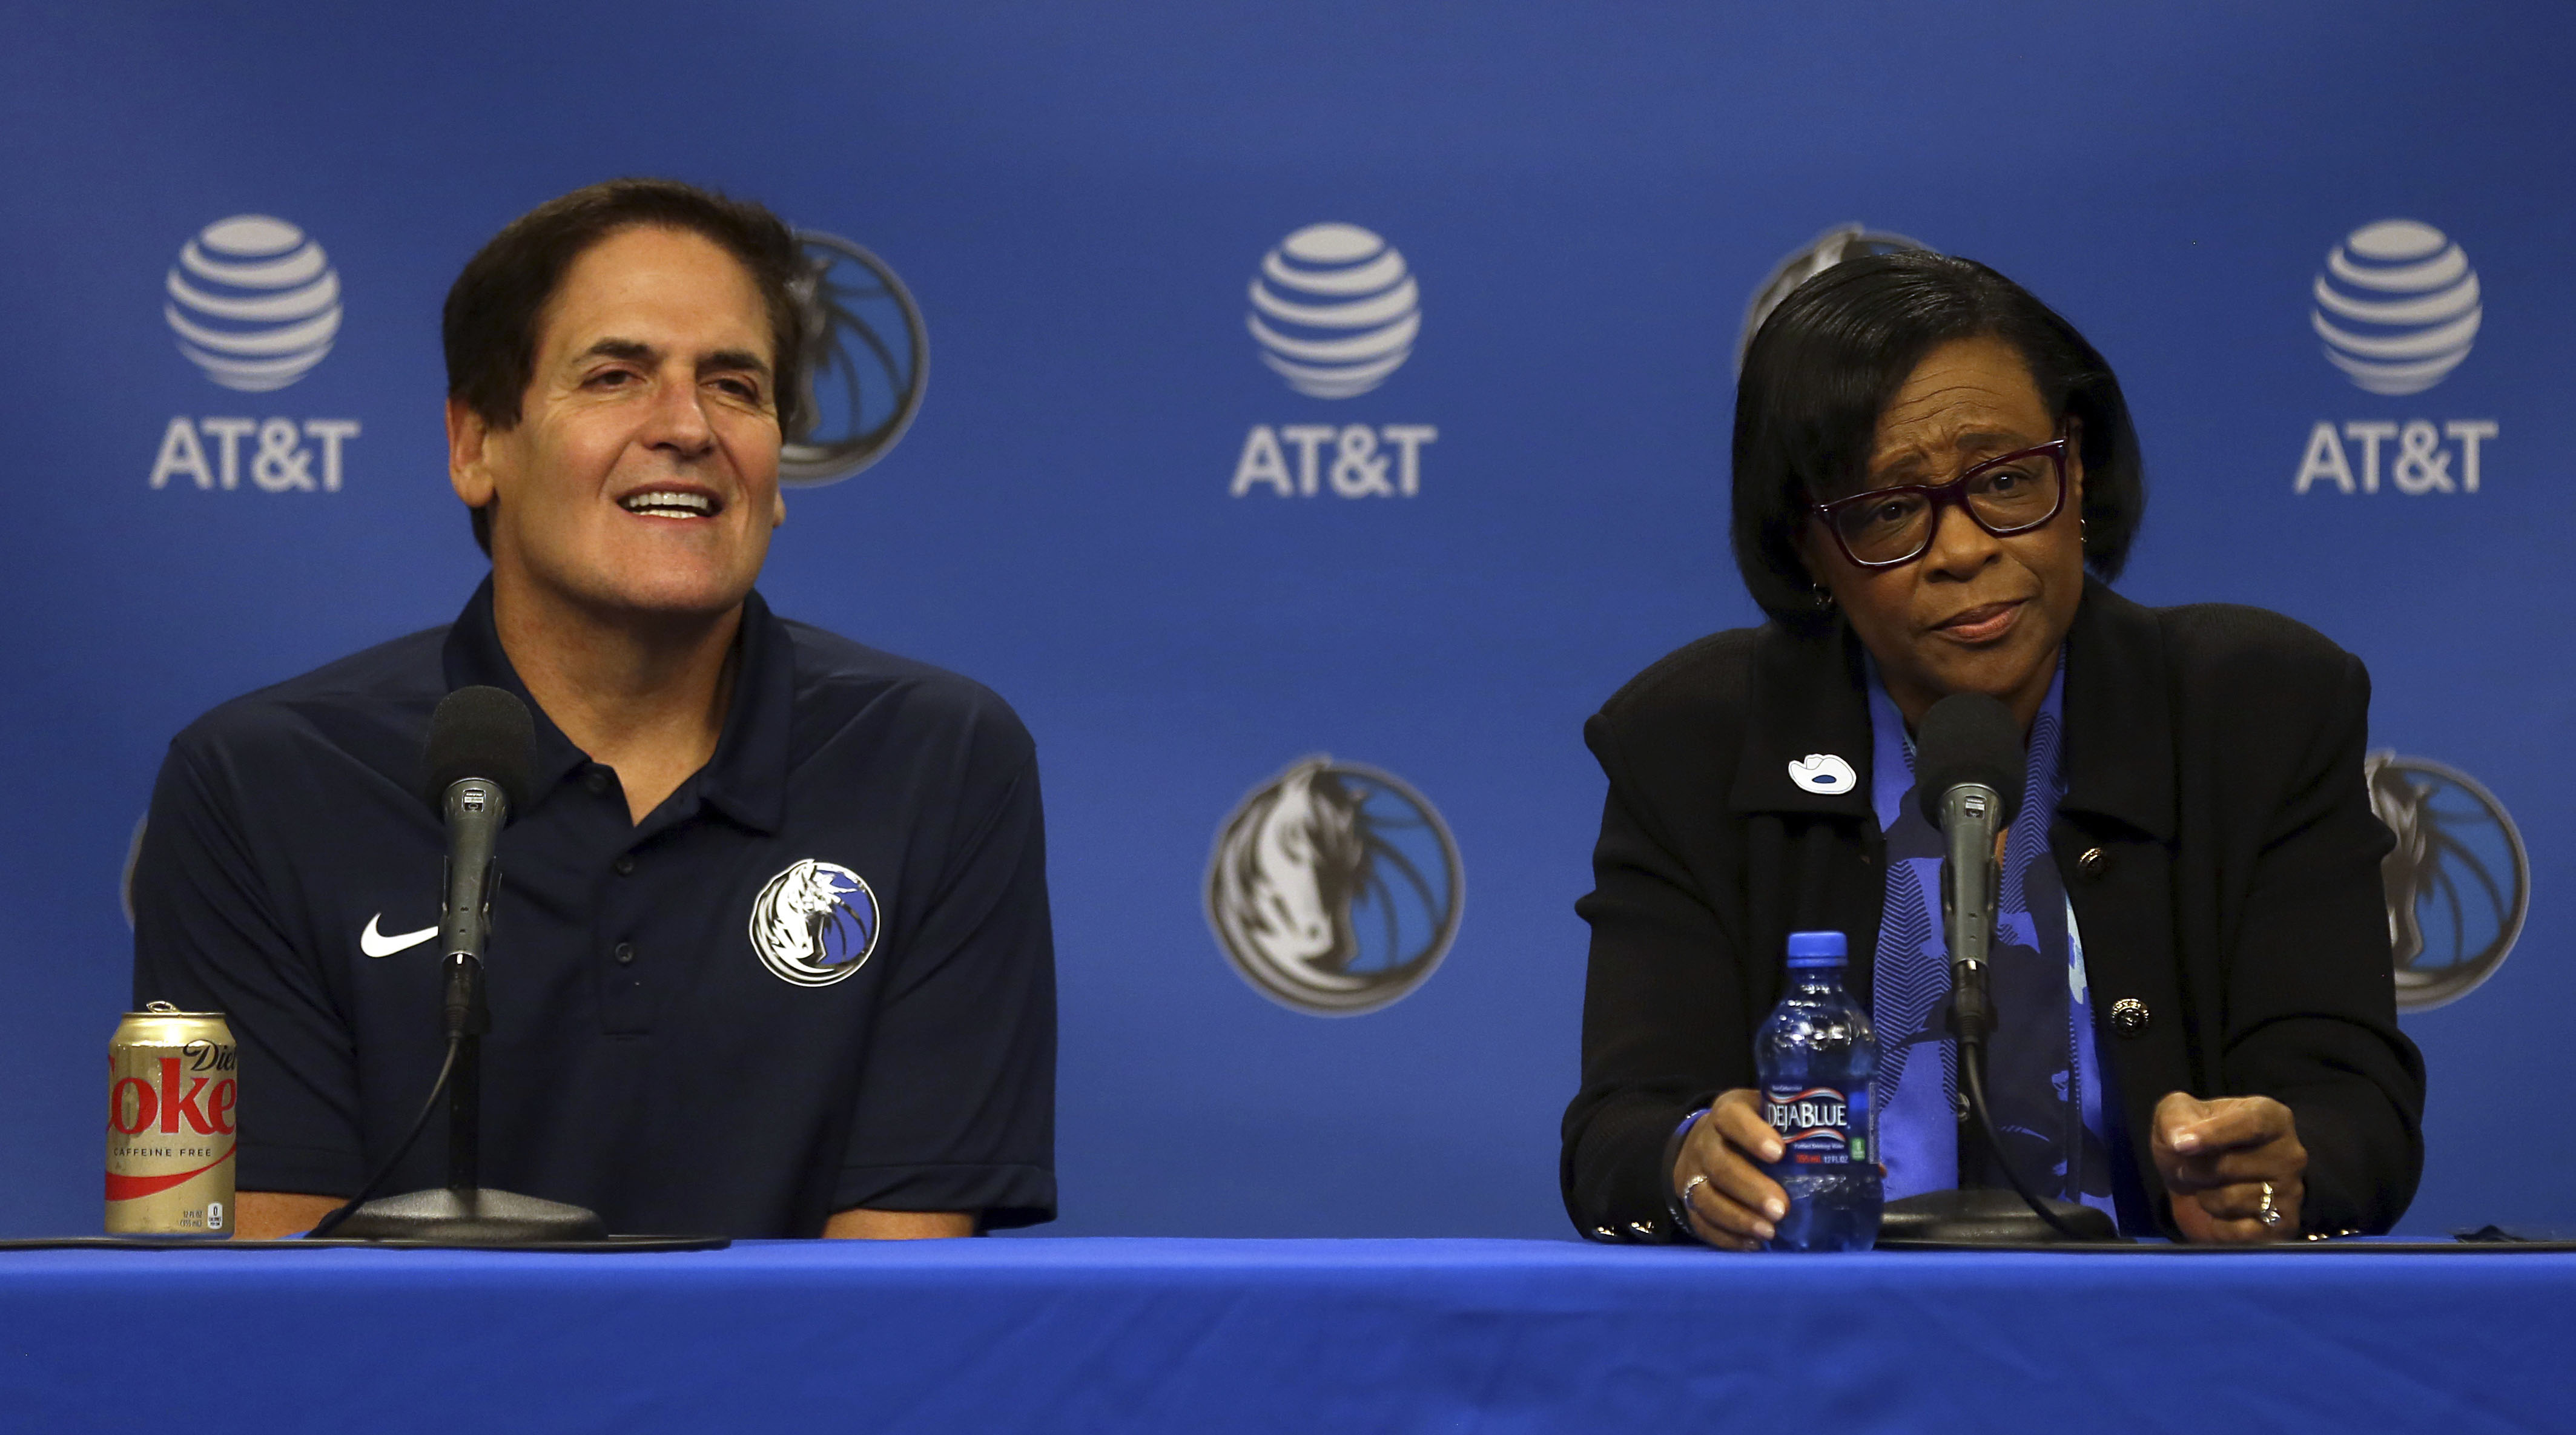 Mavericks fined, release workplace investigation findings